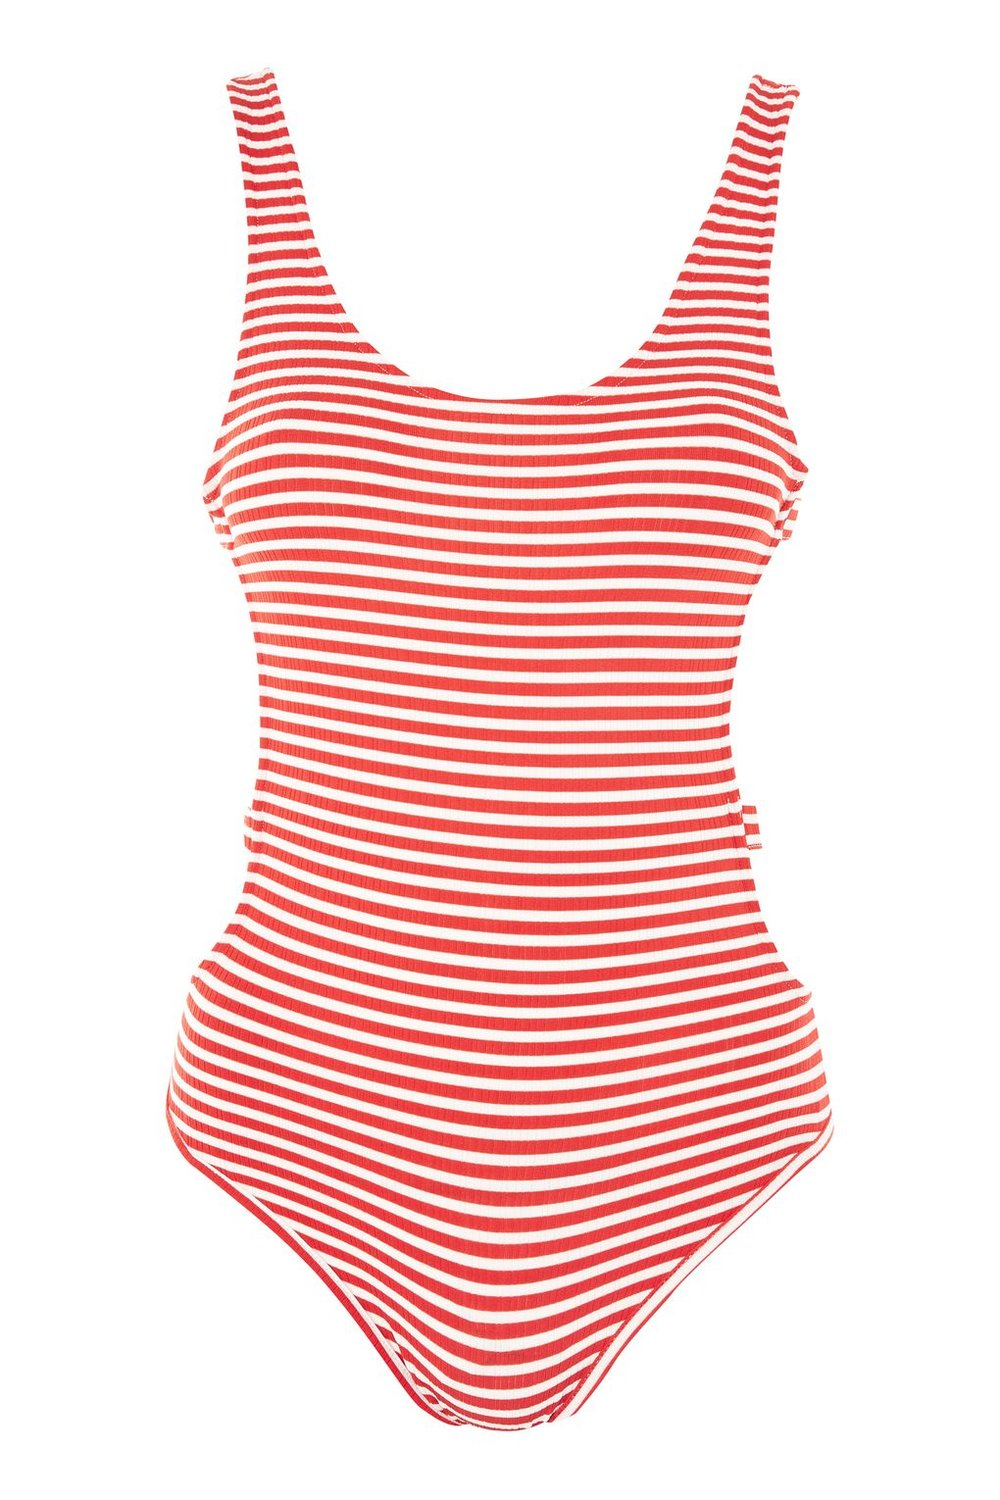 Stripe Body Suit £22.00 at Topshop